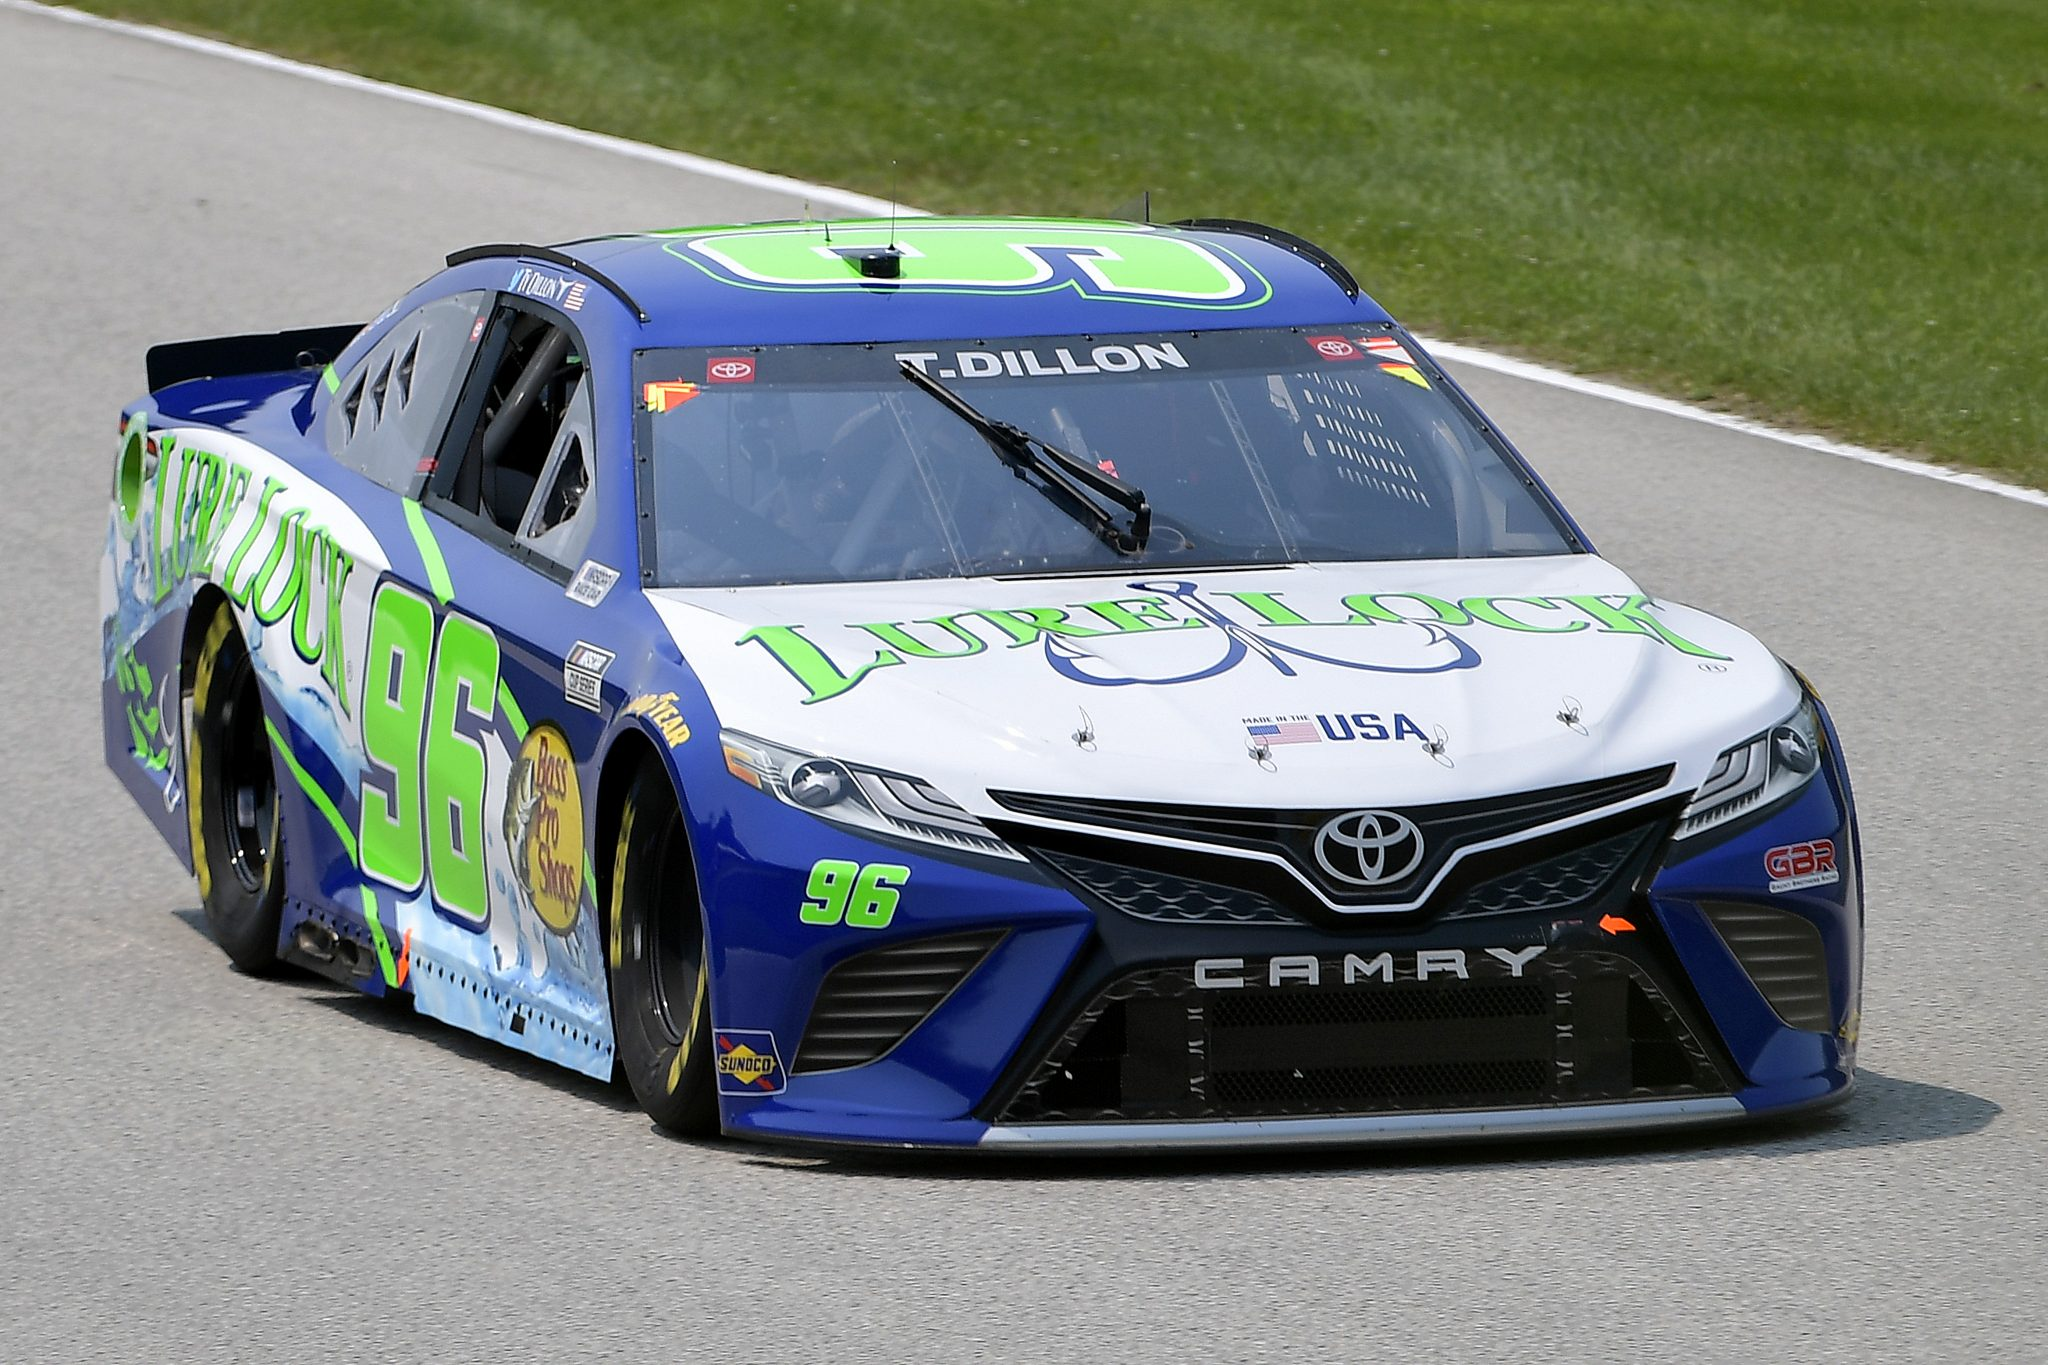 ELKHART LAKE, WISCONSIN - JULY 03: Ty Dillon, driver of the #96 Lure Lock/Bass Pro Shops Toyota, drives during practice for the NASCAR Cup Series Jockey Made in America 250 Presented by Kwik Trip at Road America on July 03, 2021 in Elkhart Lake, Wisconsin. (Photo by Logan Riely/Getty Images)   Getty Images